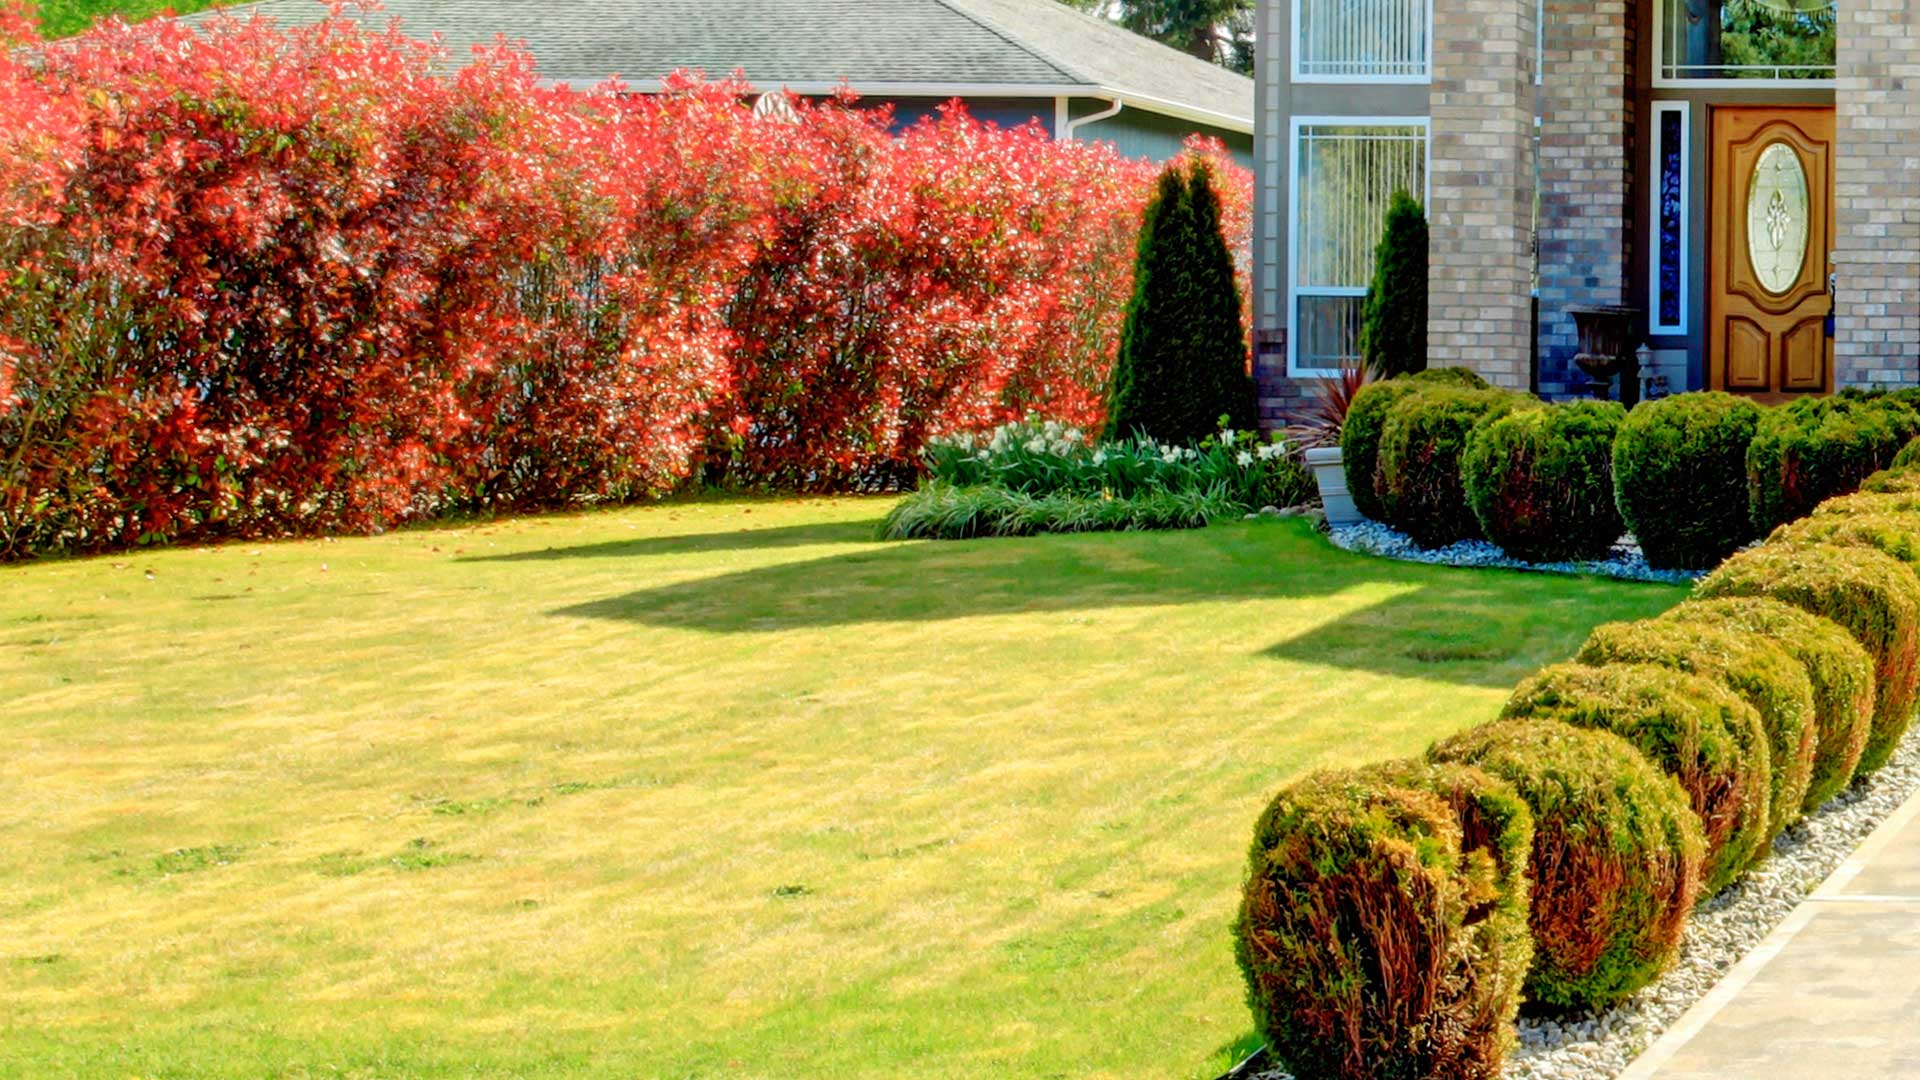 Start a career in lawn care maintenance with J&C Lawn Care in Happy Valley, OR.